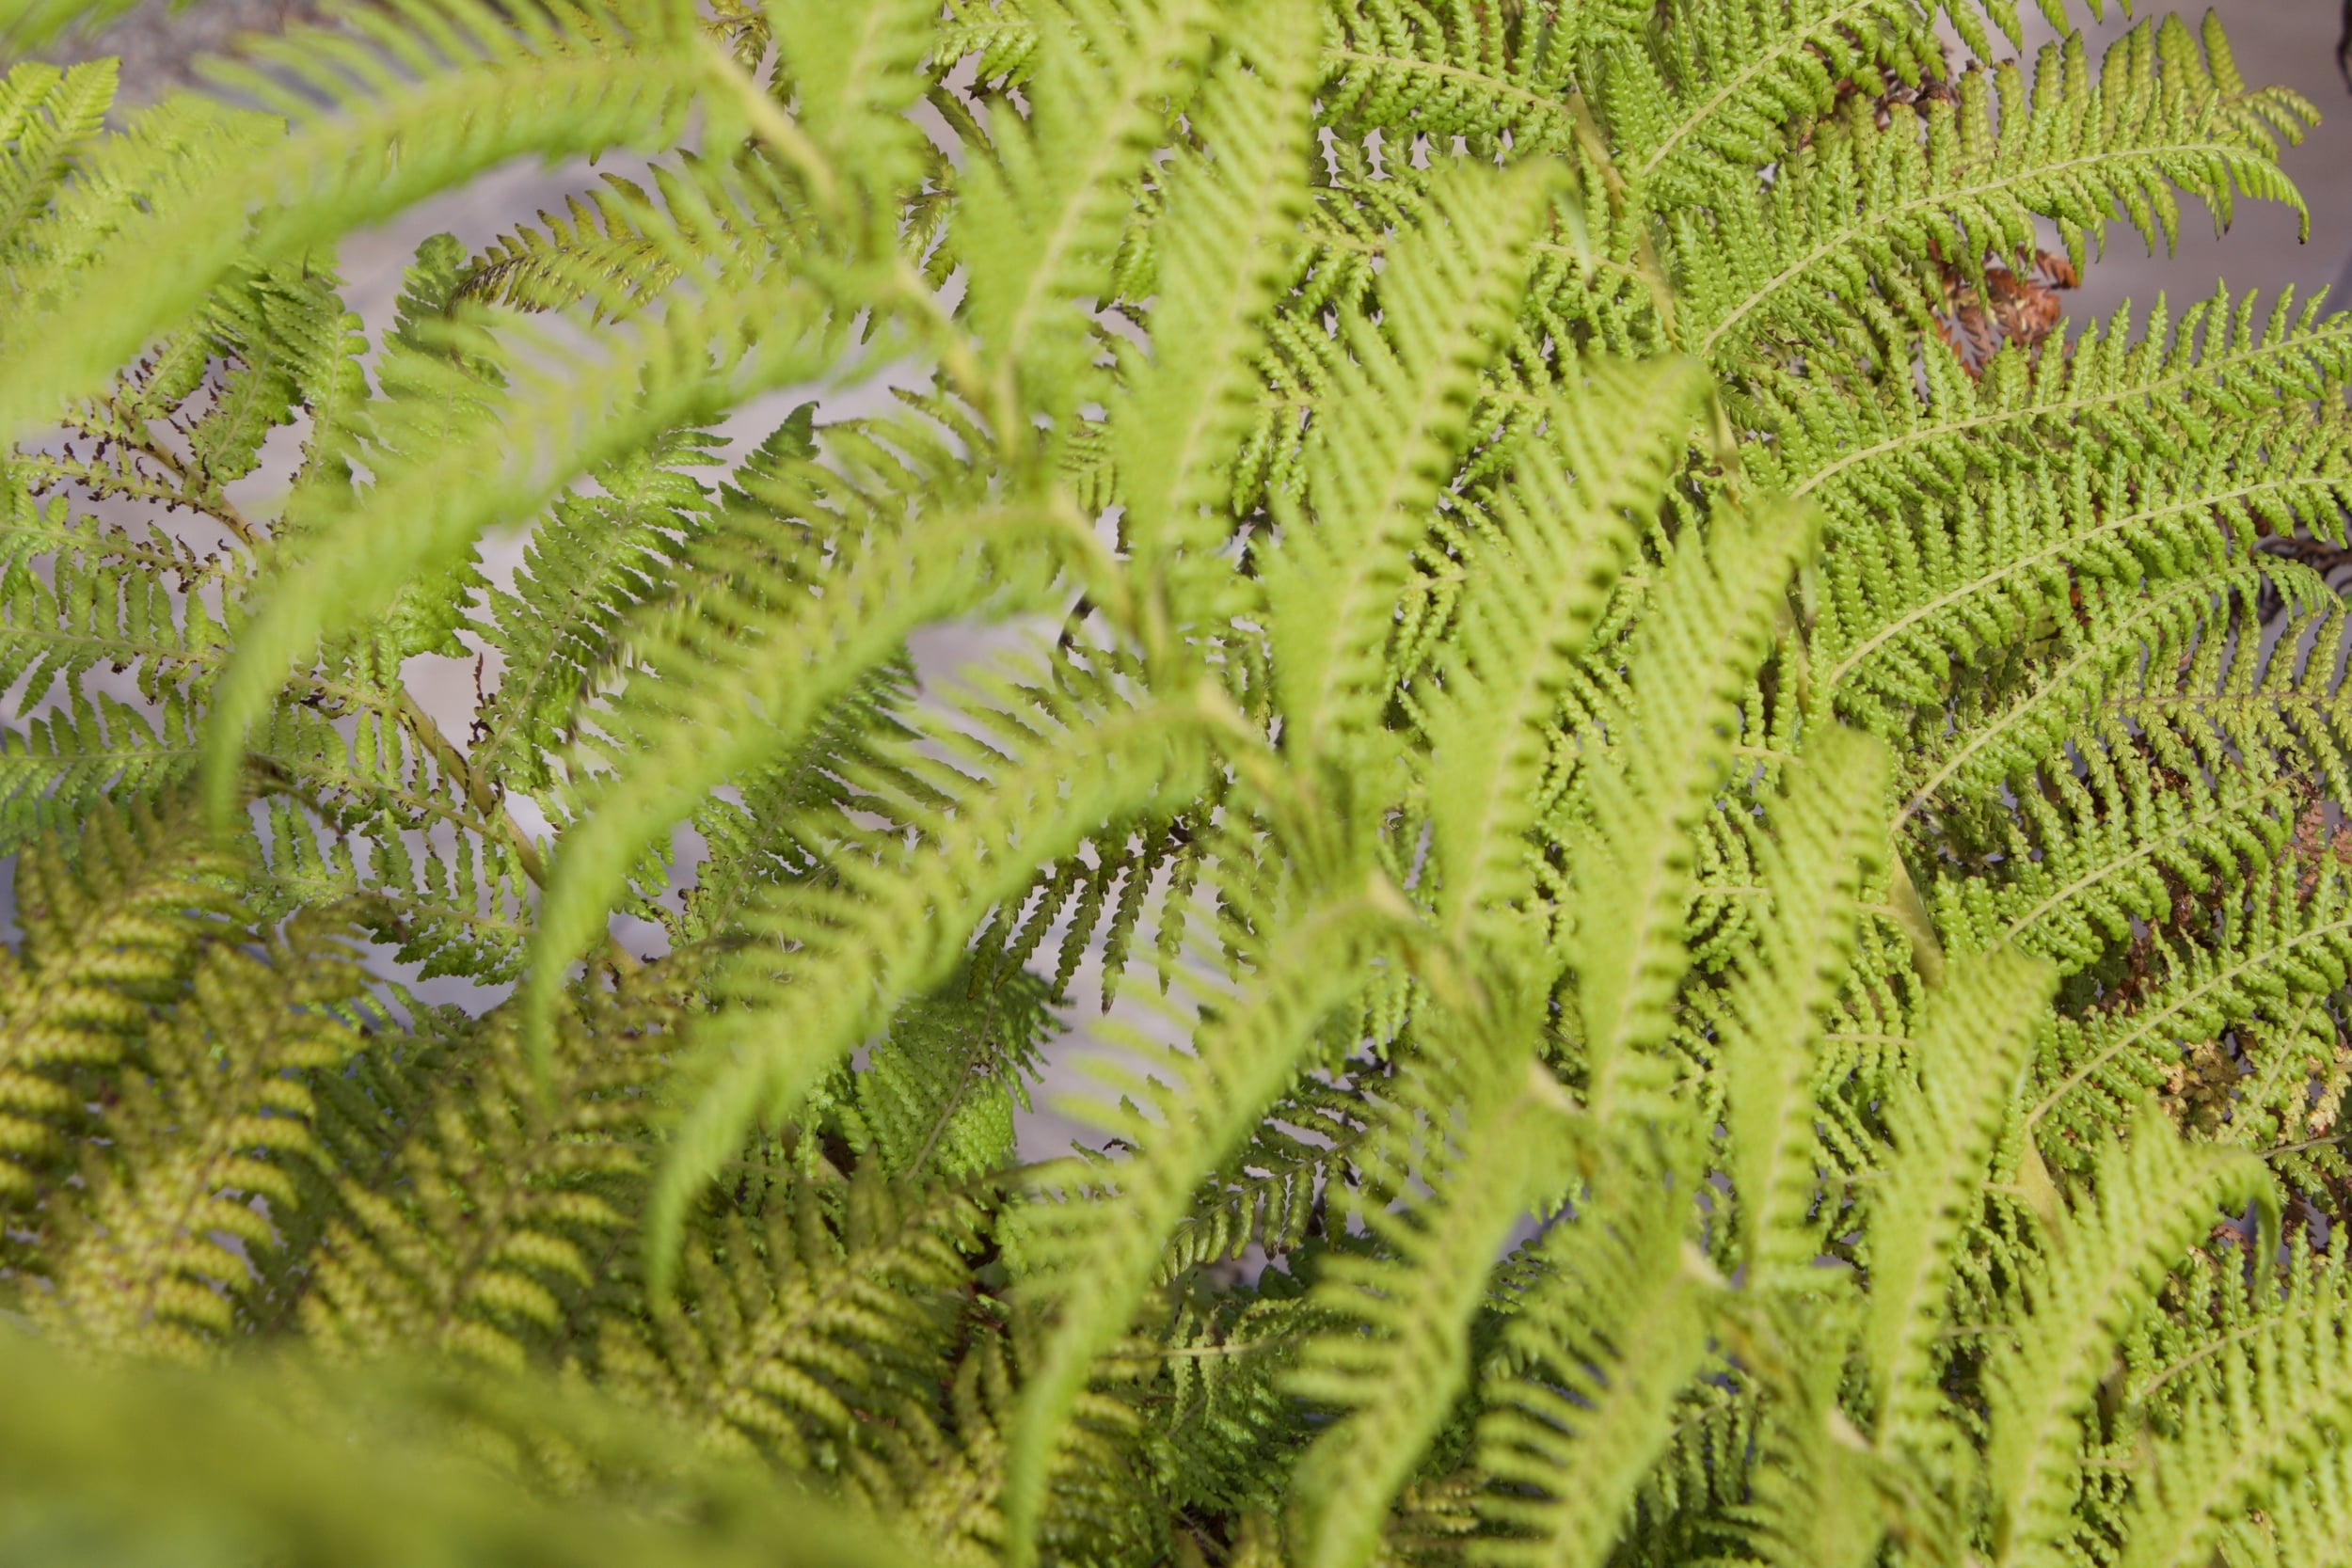 antartica dicksonia Tree Fern.jpg